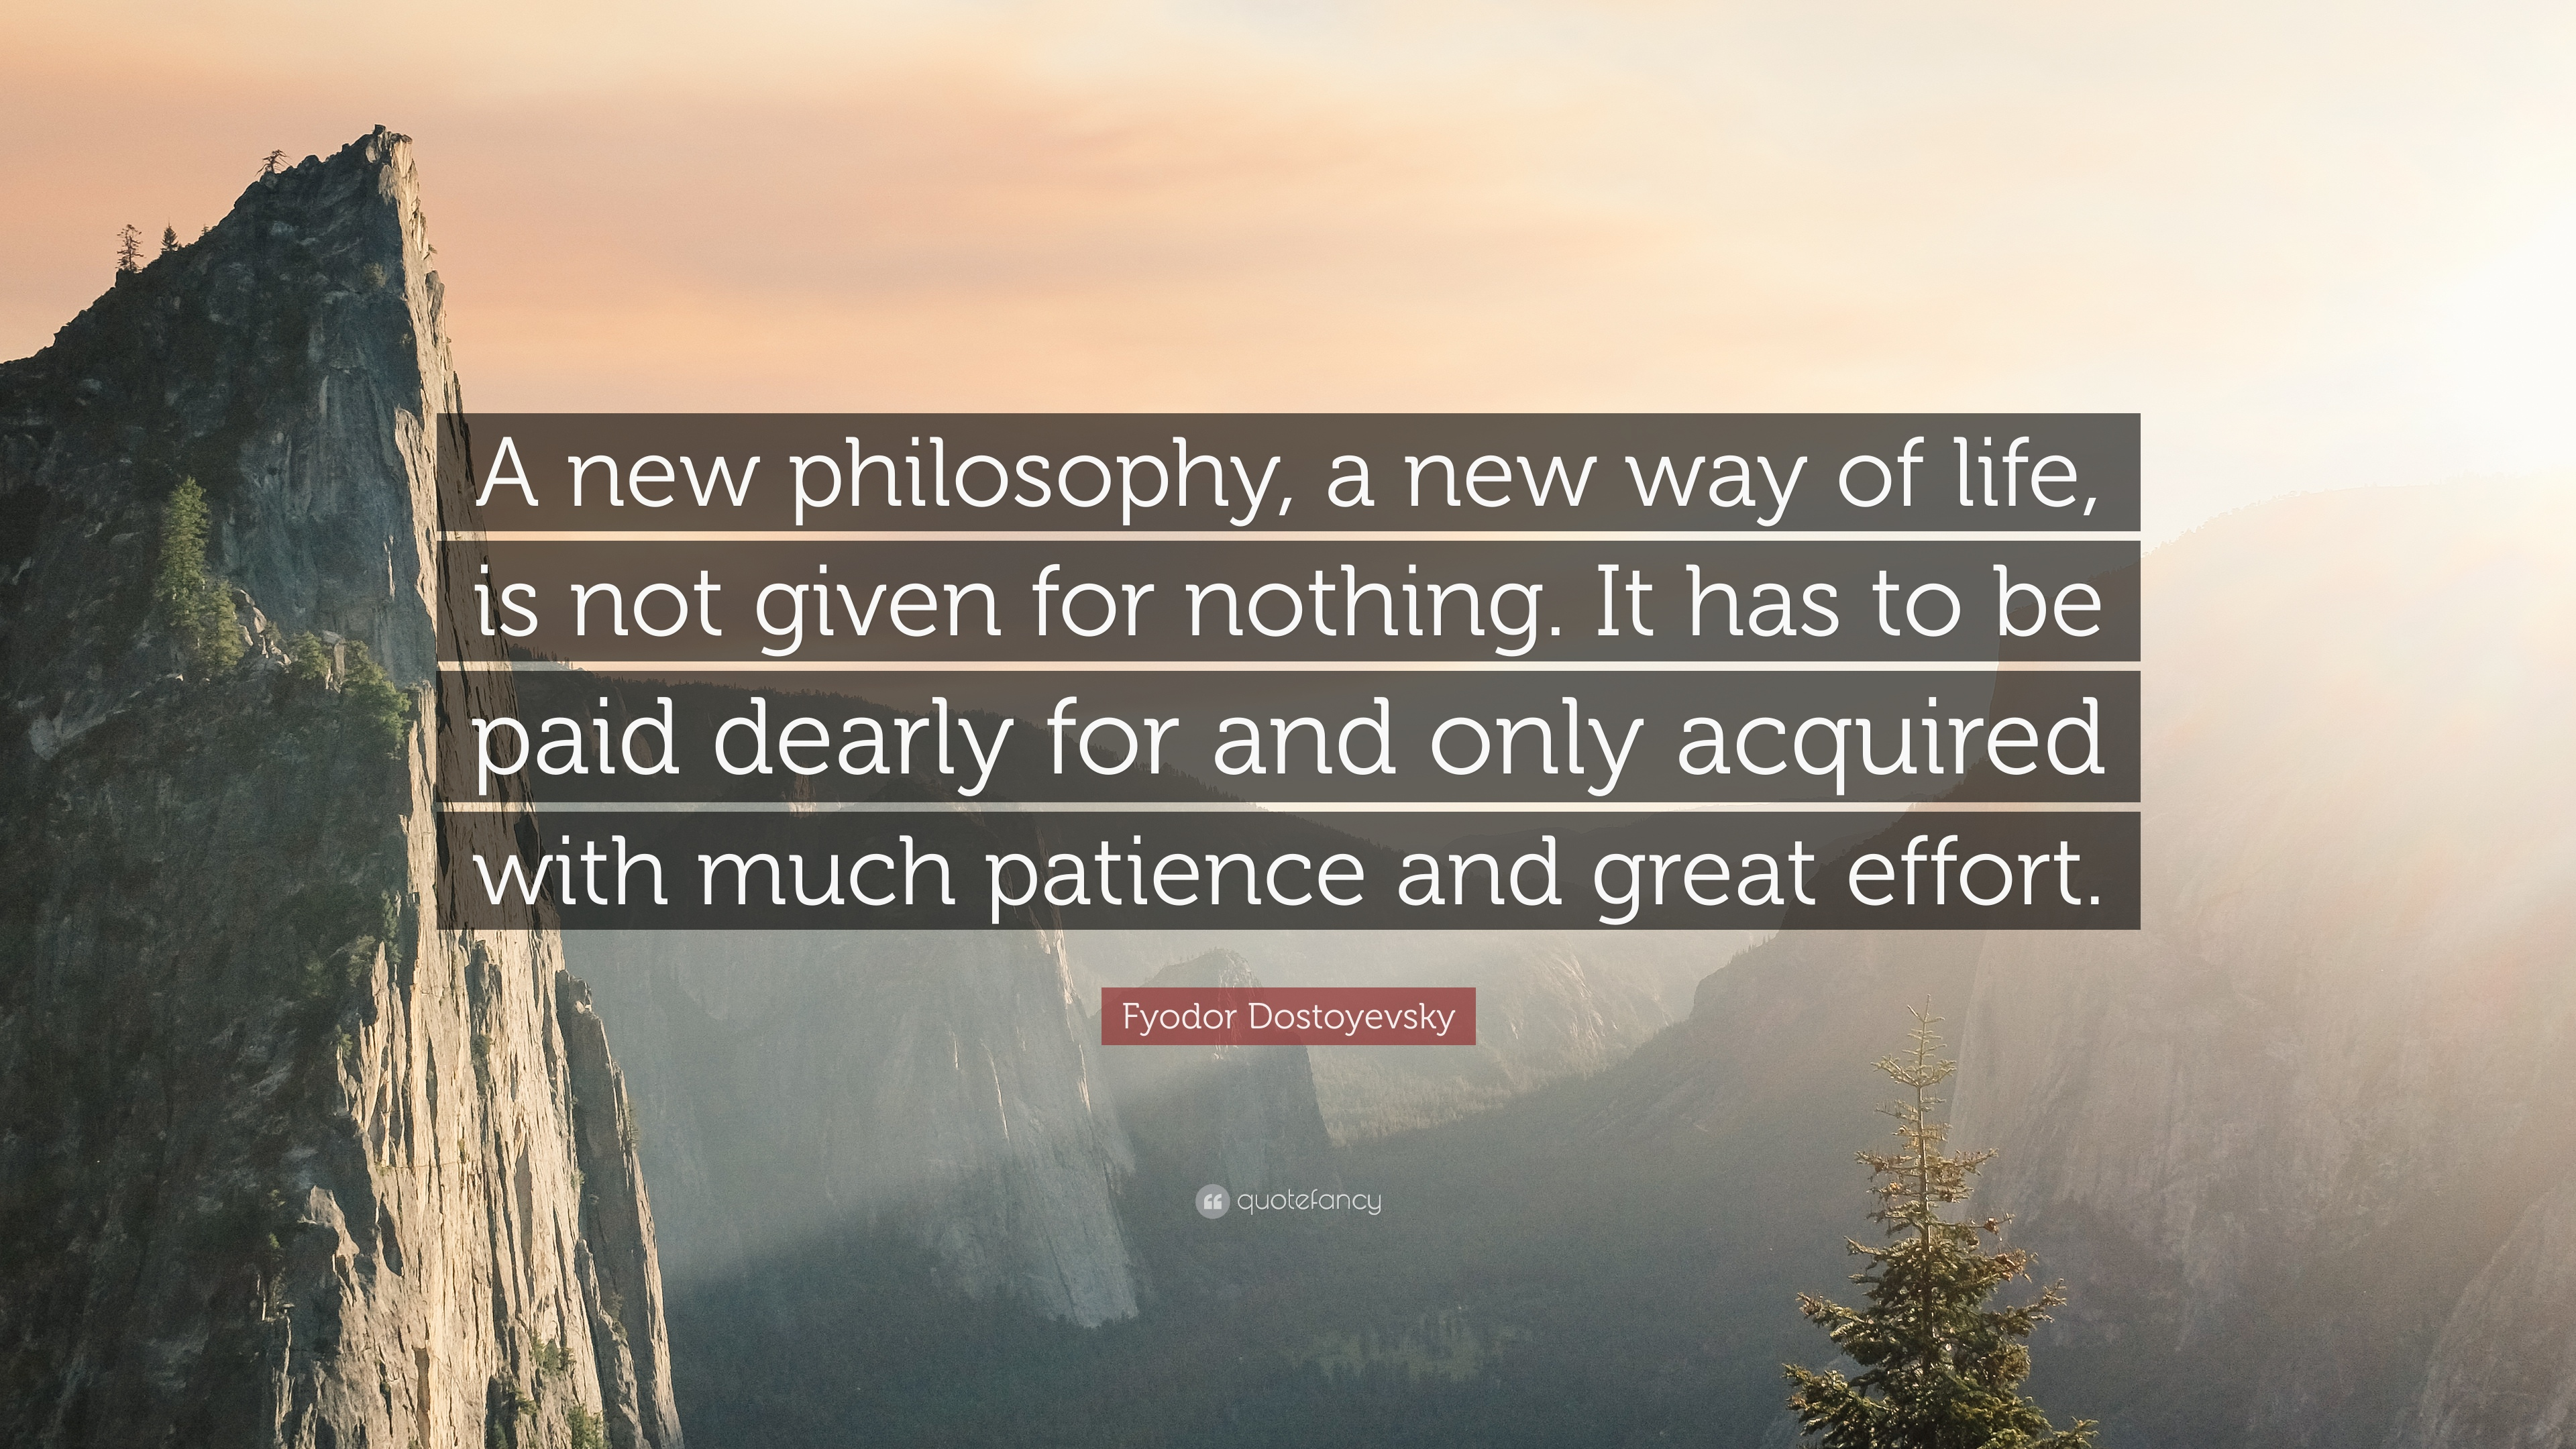 Fyodor Dostoyevsky Quote: U201cA New Philosophy, A New Way Of Life, Is